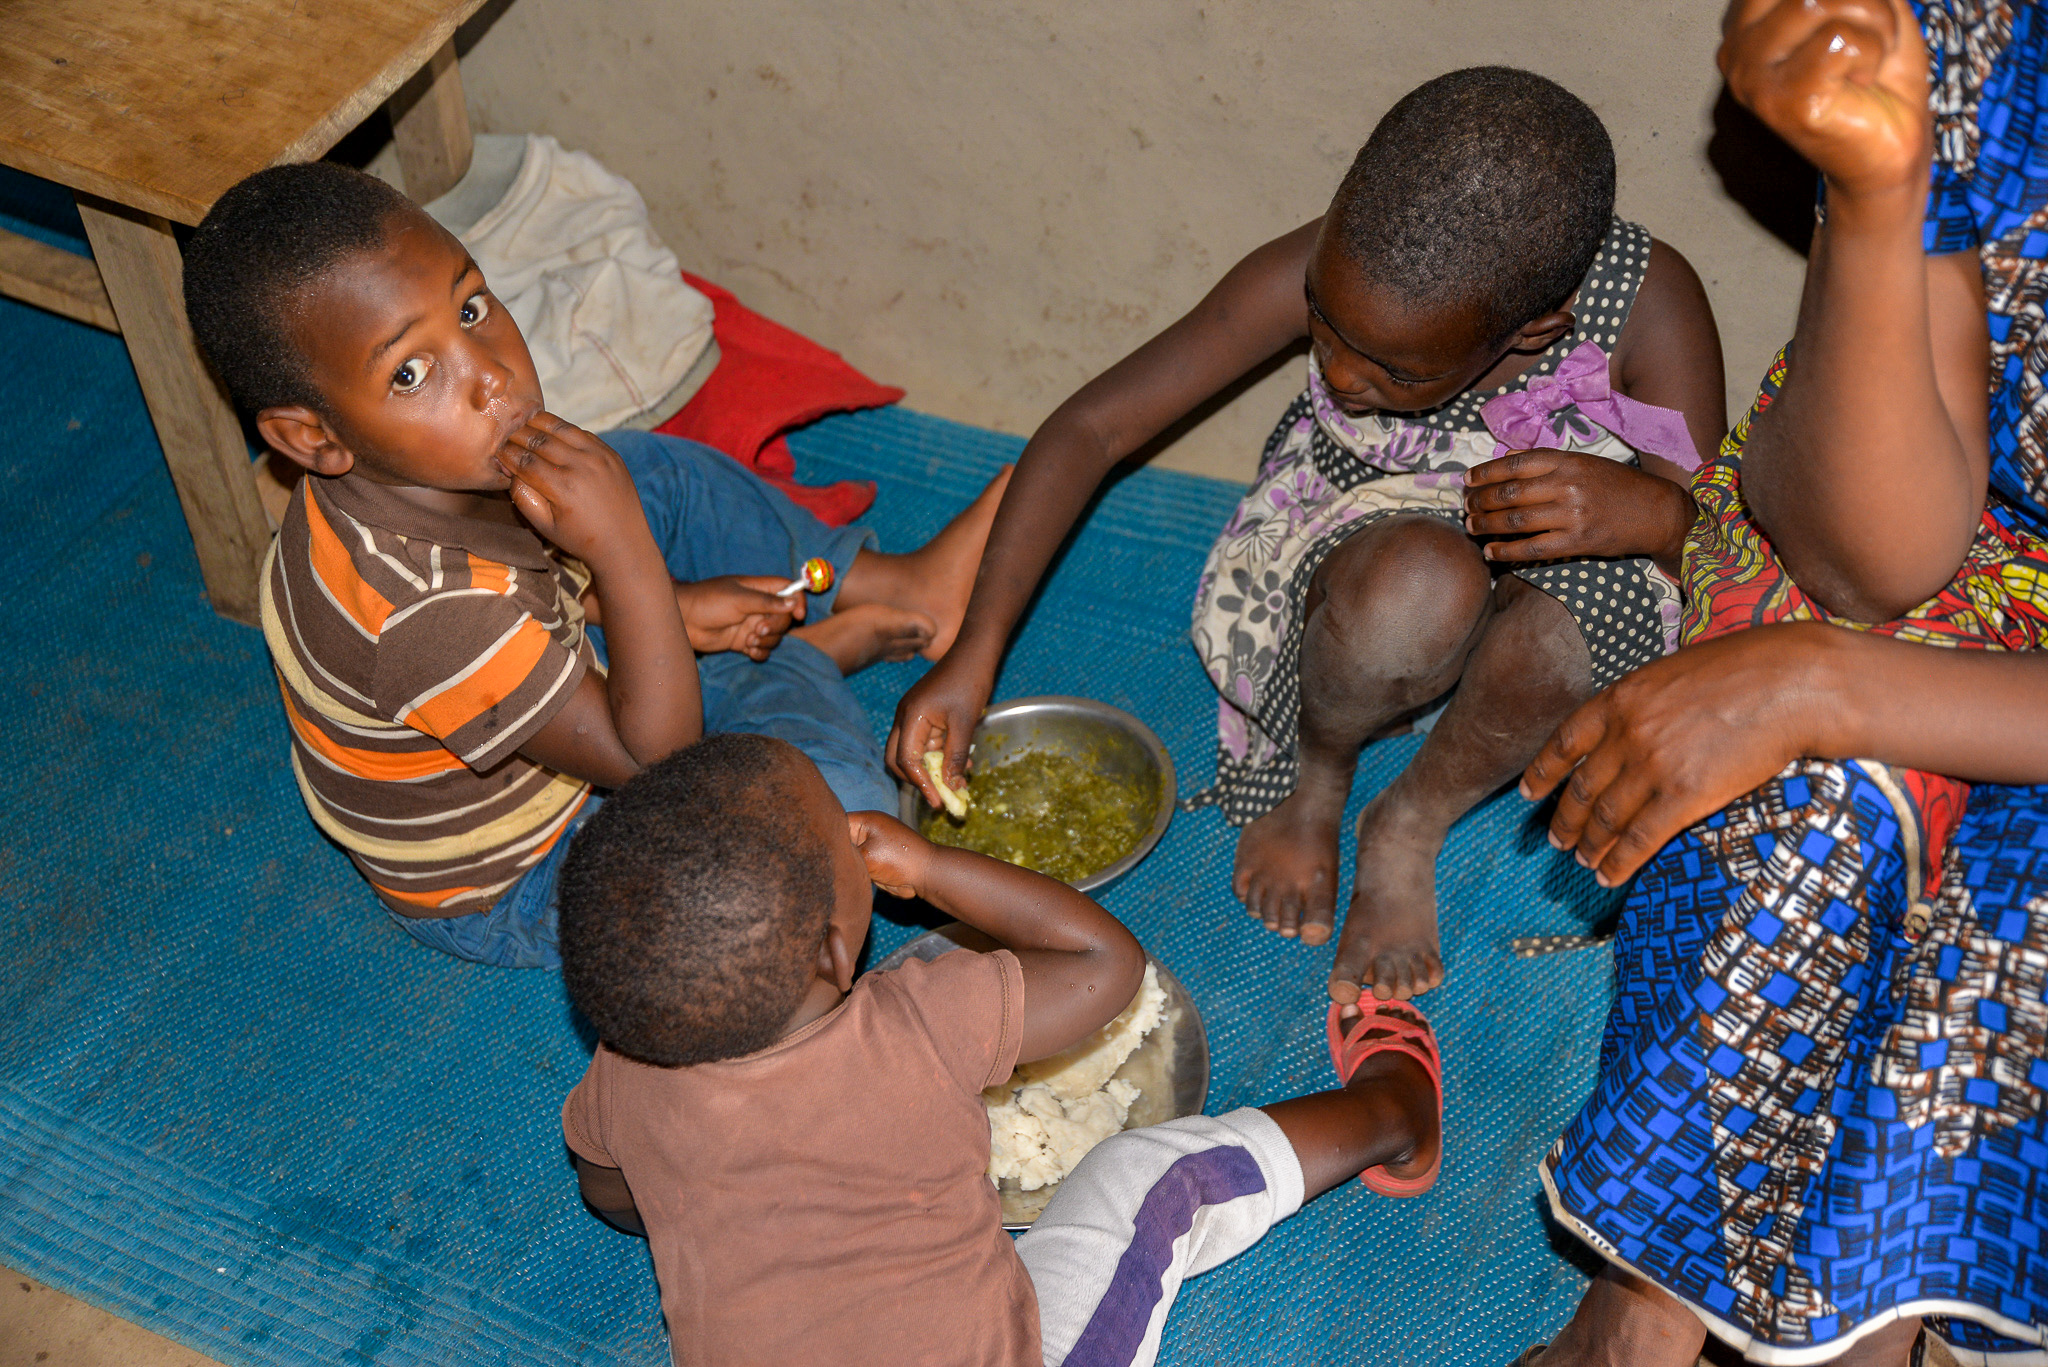 Eating time: When food is served, everyone eats from the same plate, mother and her children